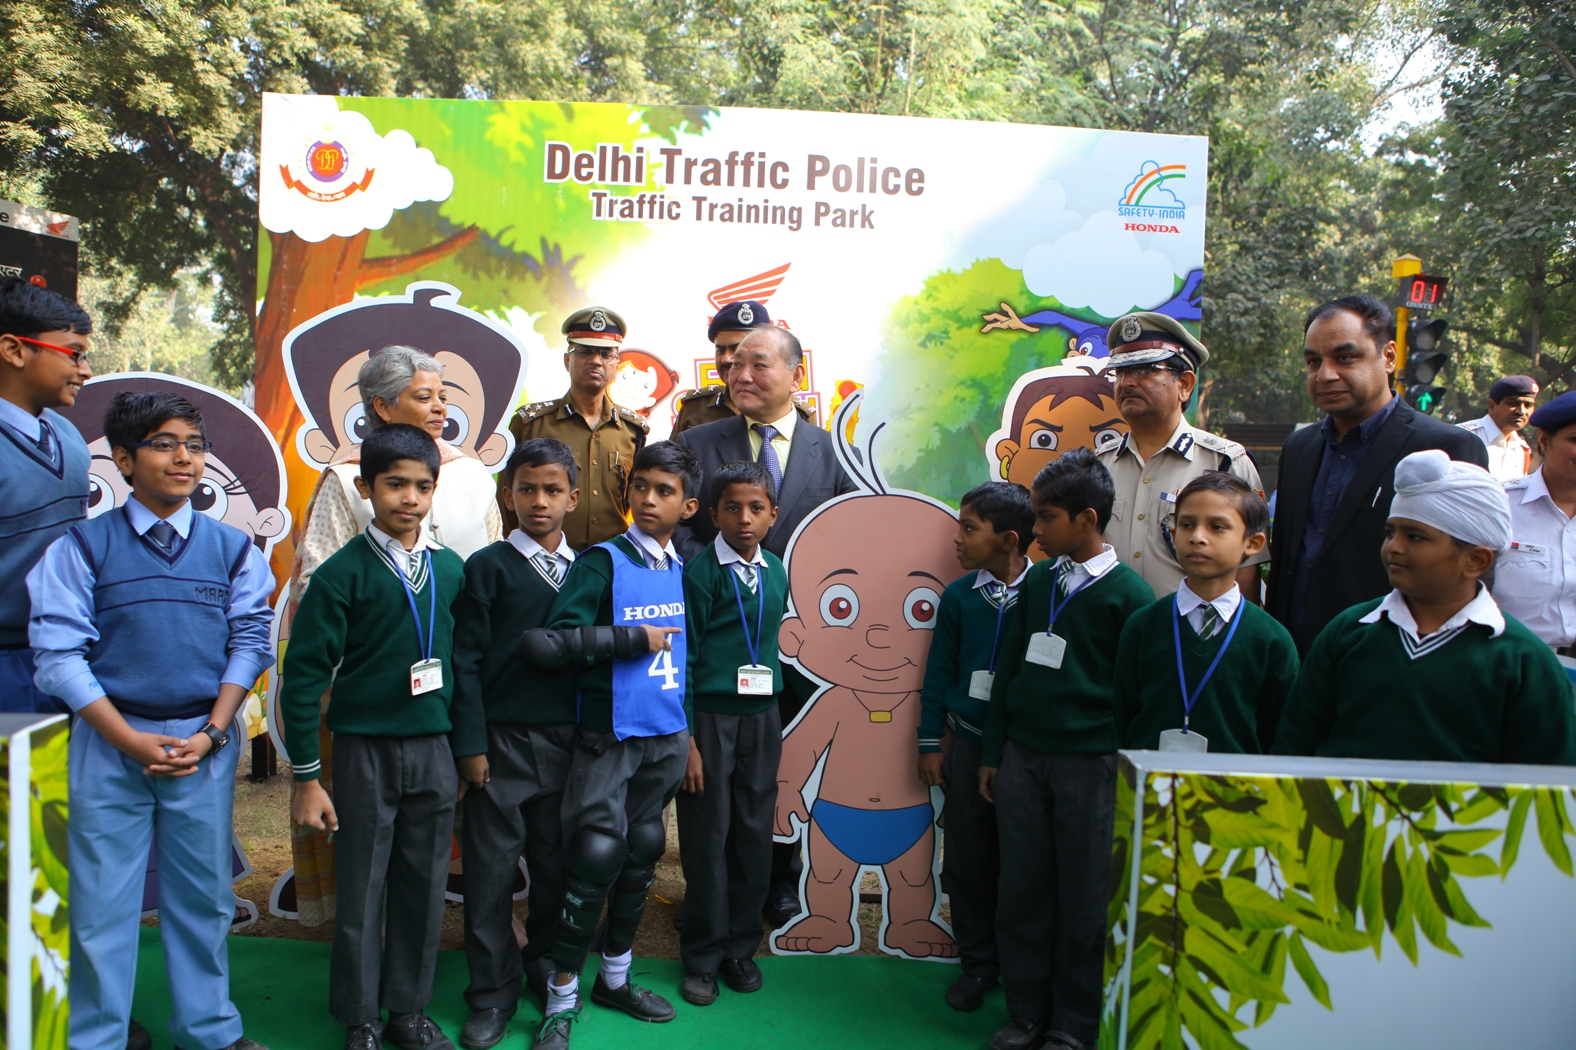 Honda's 2nd traffic park in Delhi promoting road safety